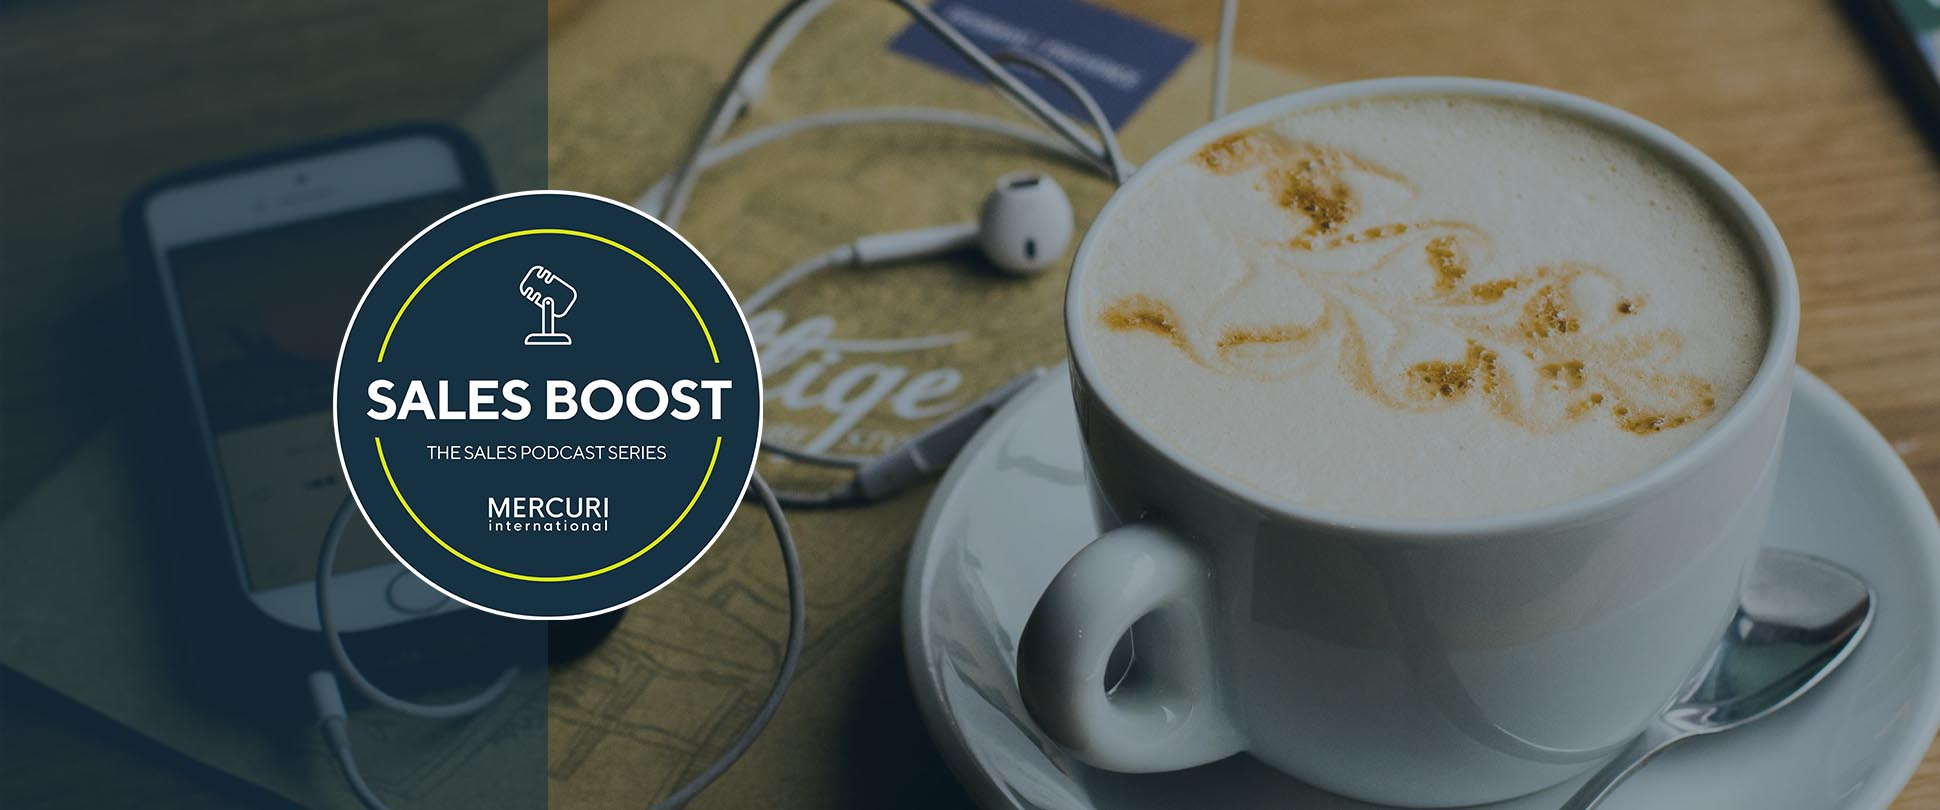 sales_boost_podcast_website_carousel_banner